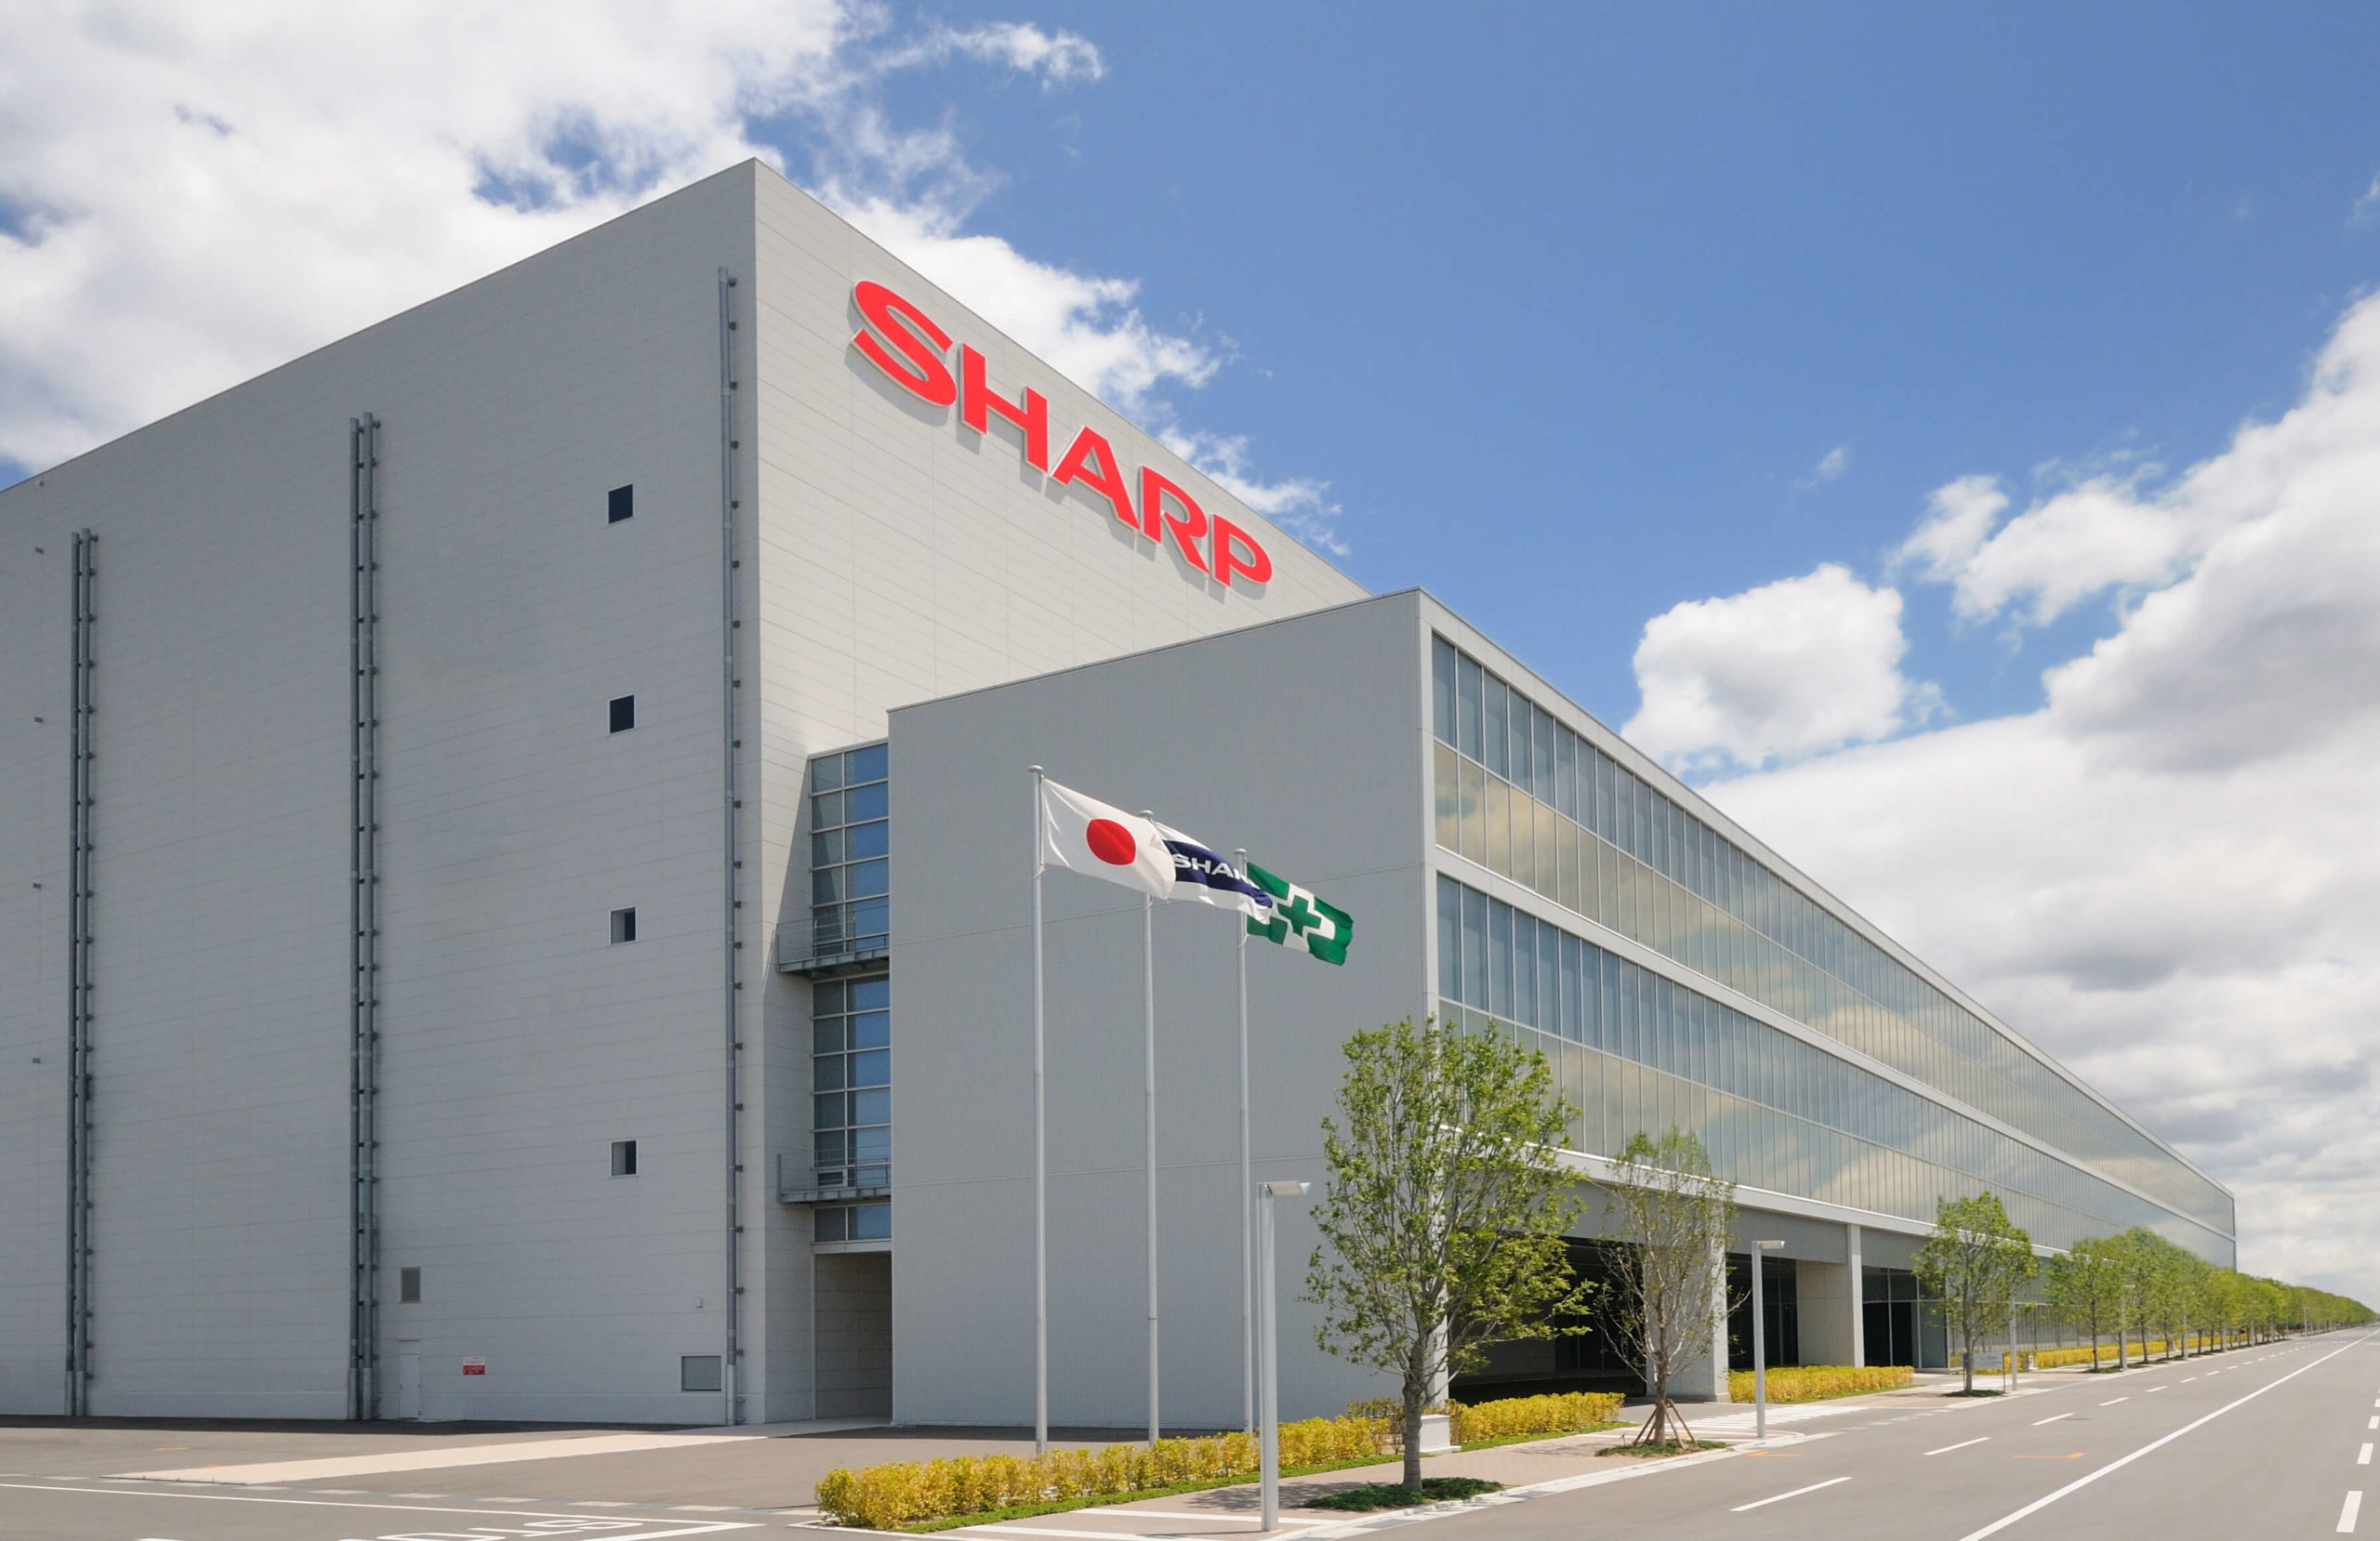 SegenSolar's thriving alliance with Sharp